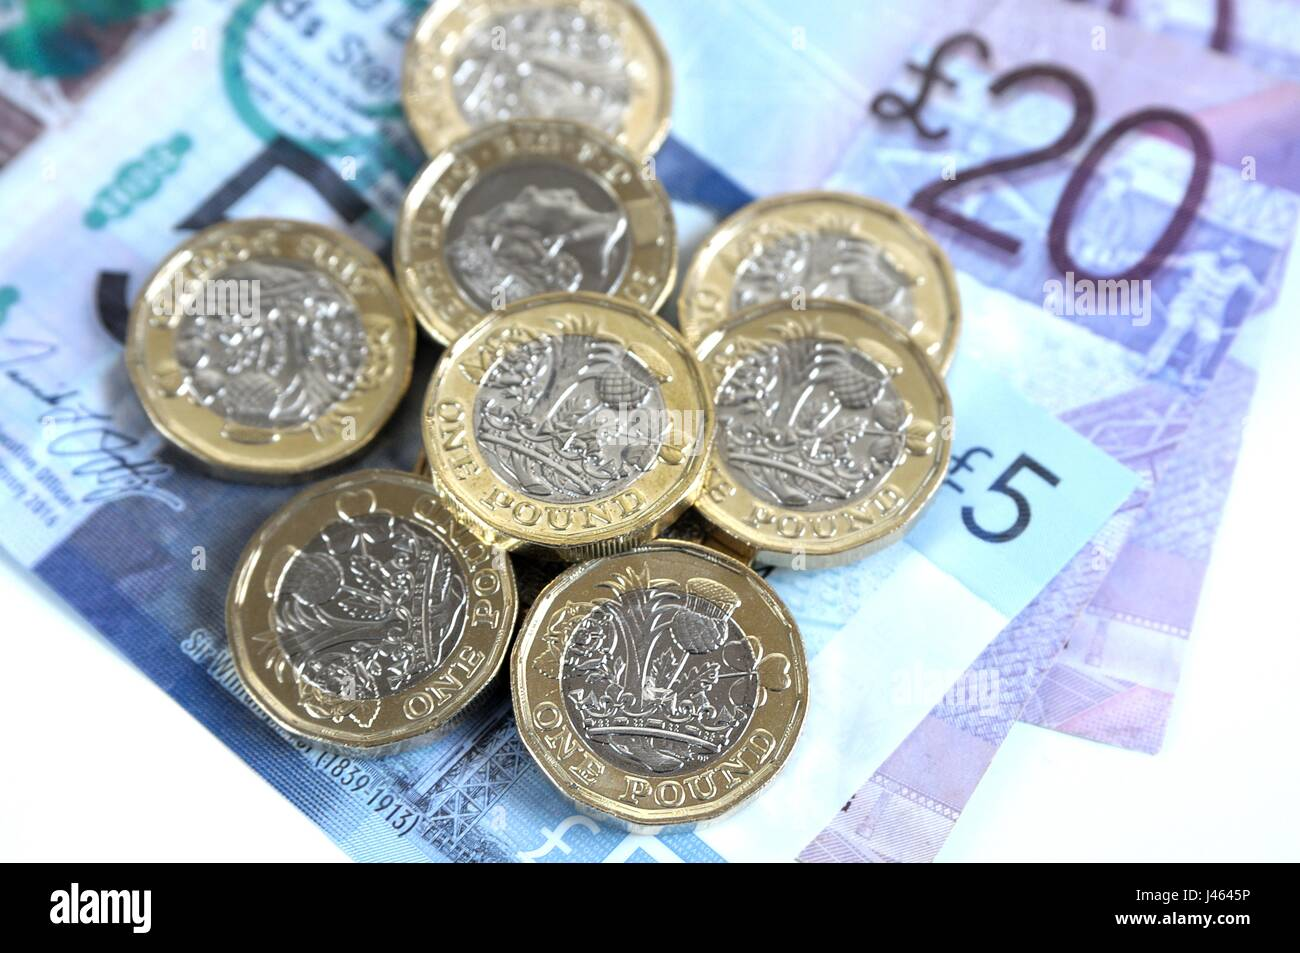 Pound Coins 2017 & Scottish £5 and £20 Notes - Stock Image